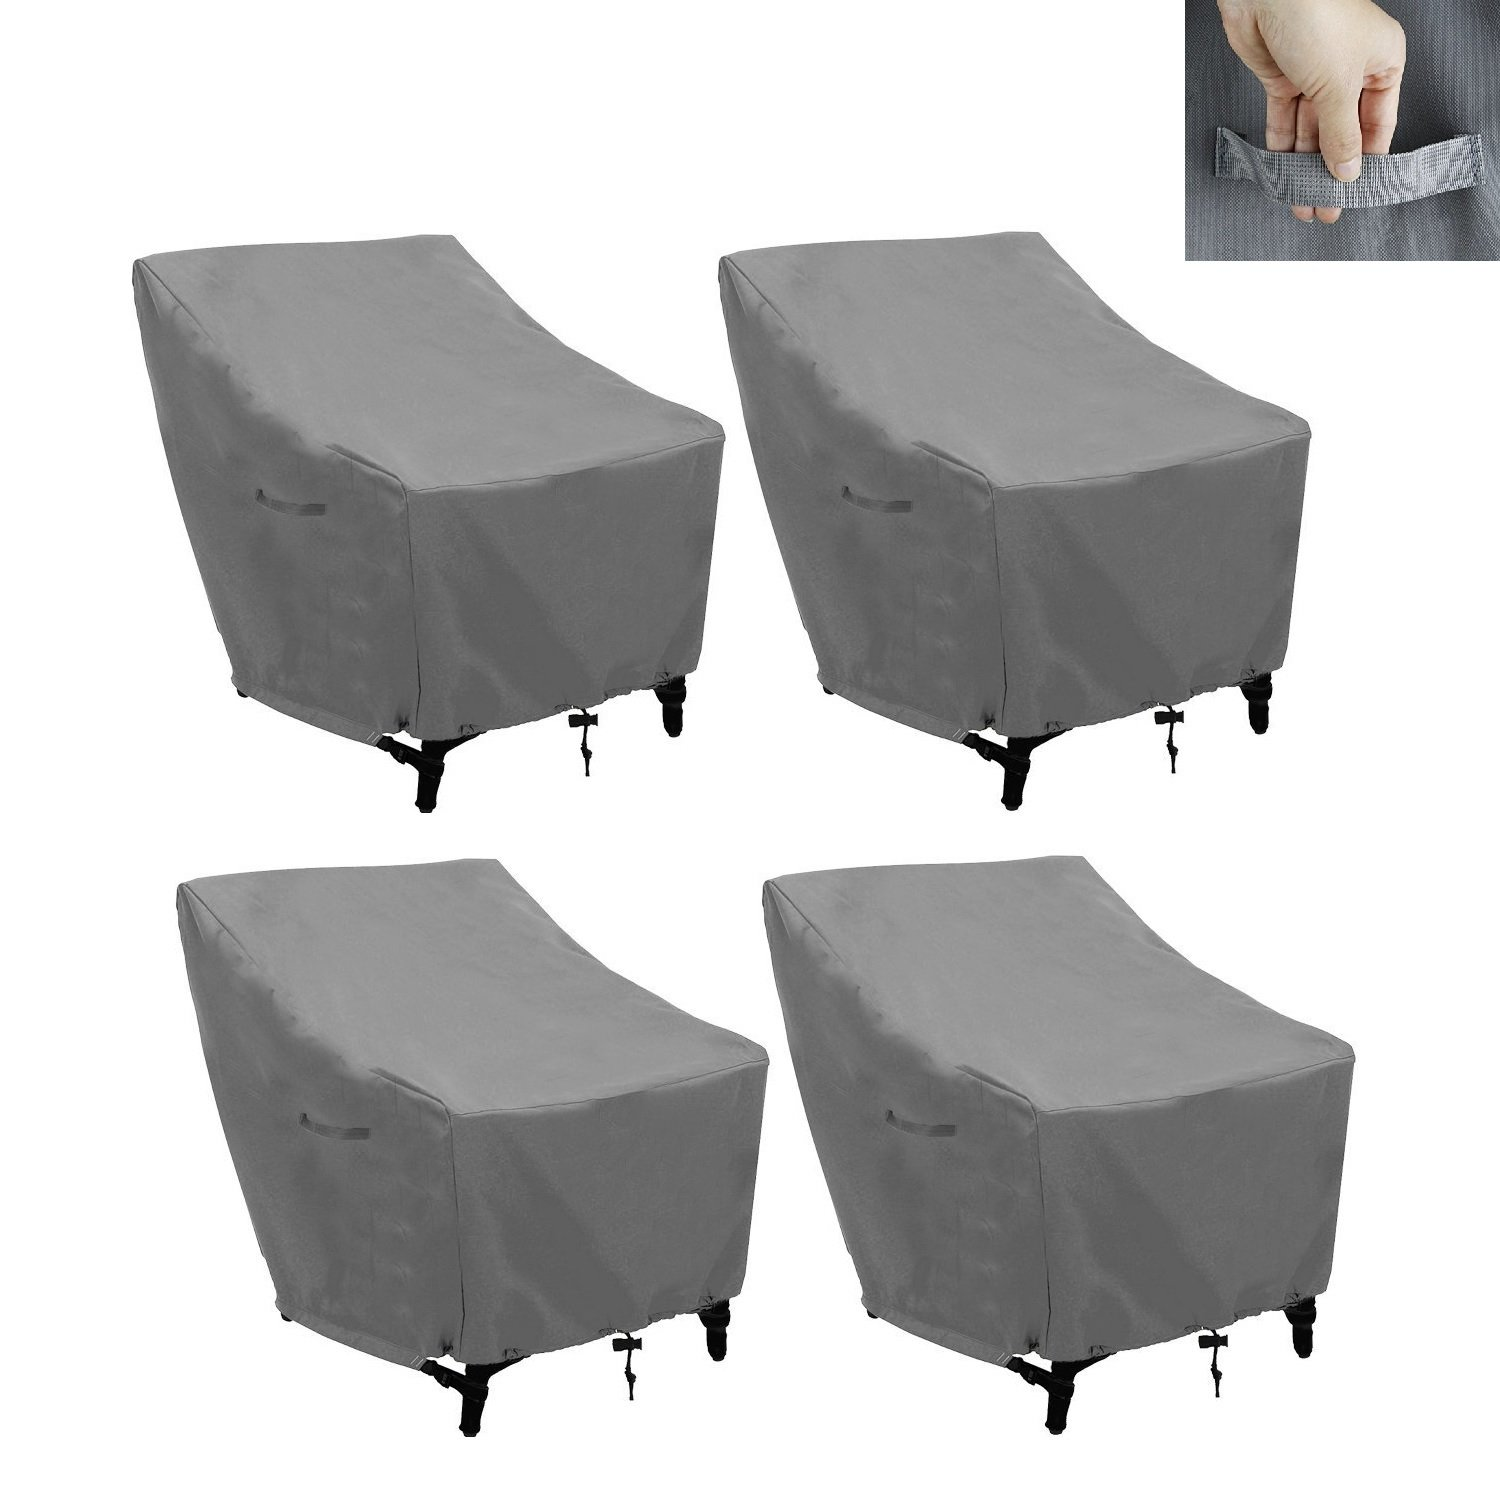 Patio Chairs Cover Outdoor Chairs Covers Stackable Chairs Cover Waterproof Premium Outdoor Furniture Cover Durable and Water Resistant Fabric(L31 x D39 x H31 inch) (Gray 4Pack)